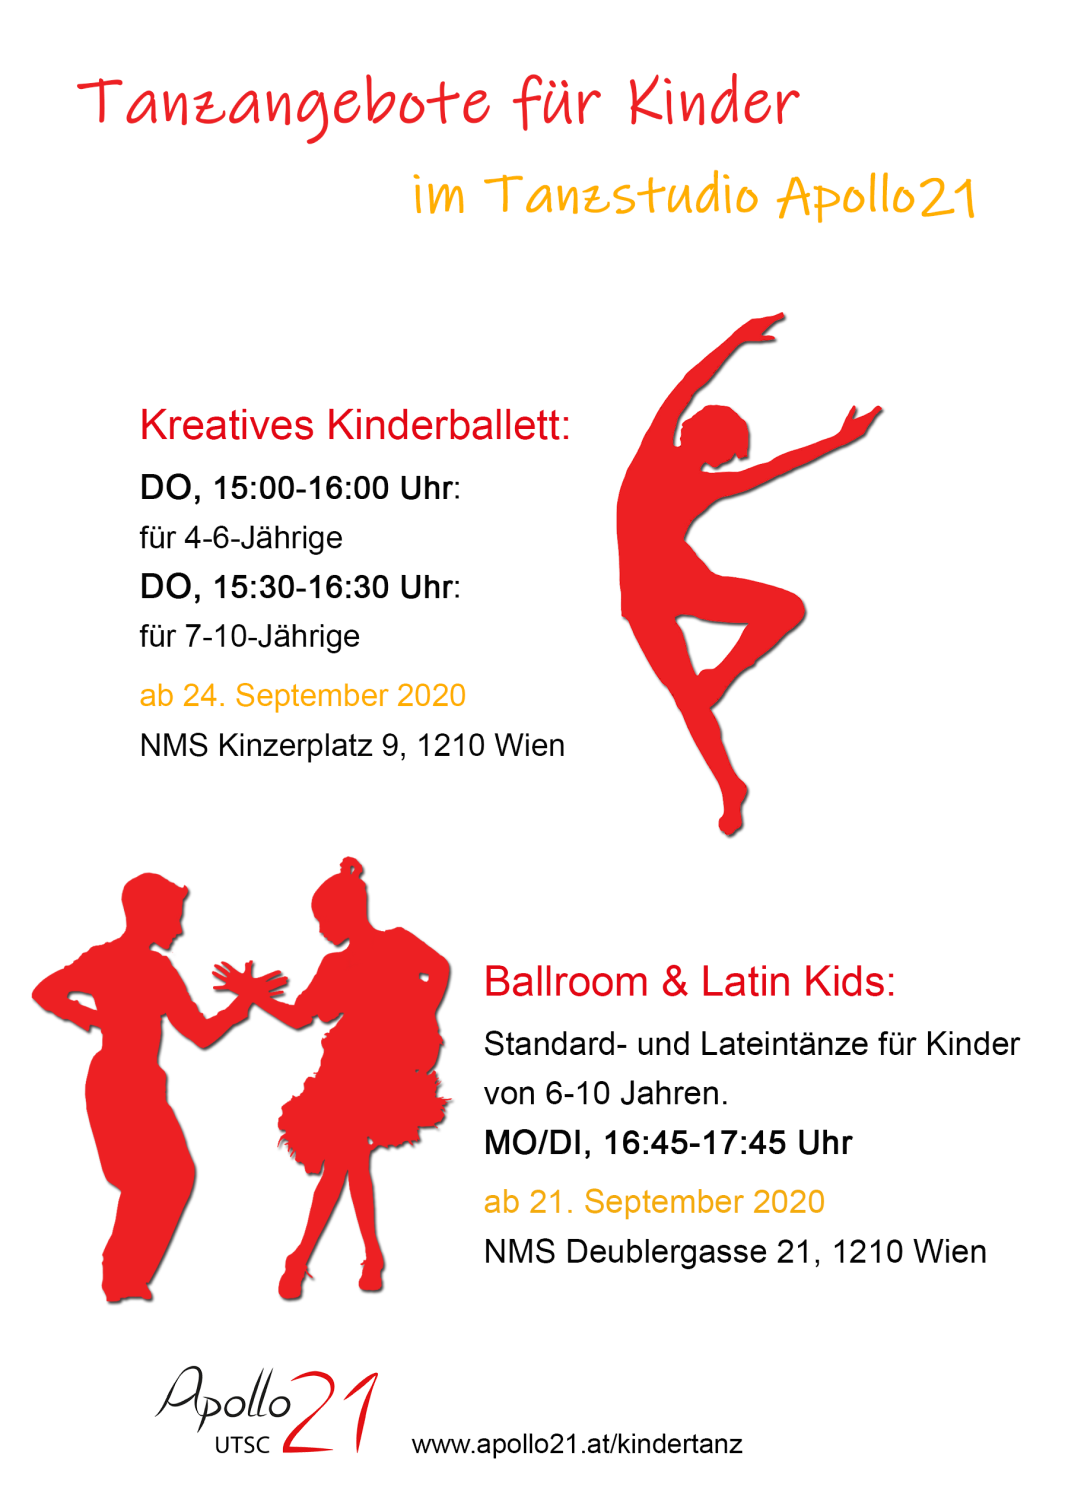 Kindertanzangebote im Apollo21